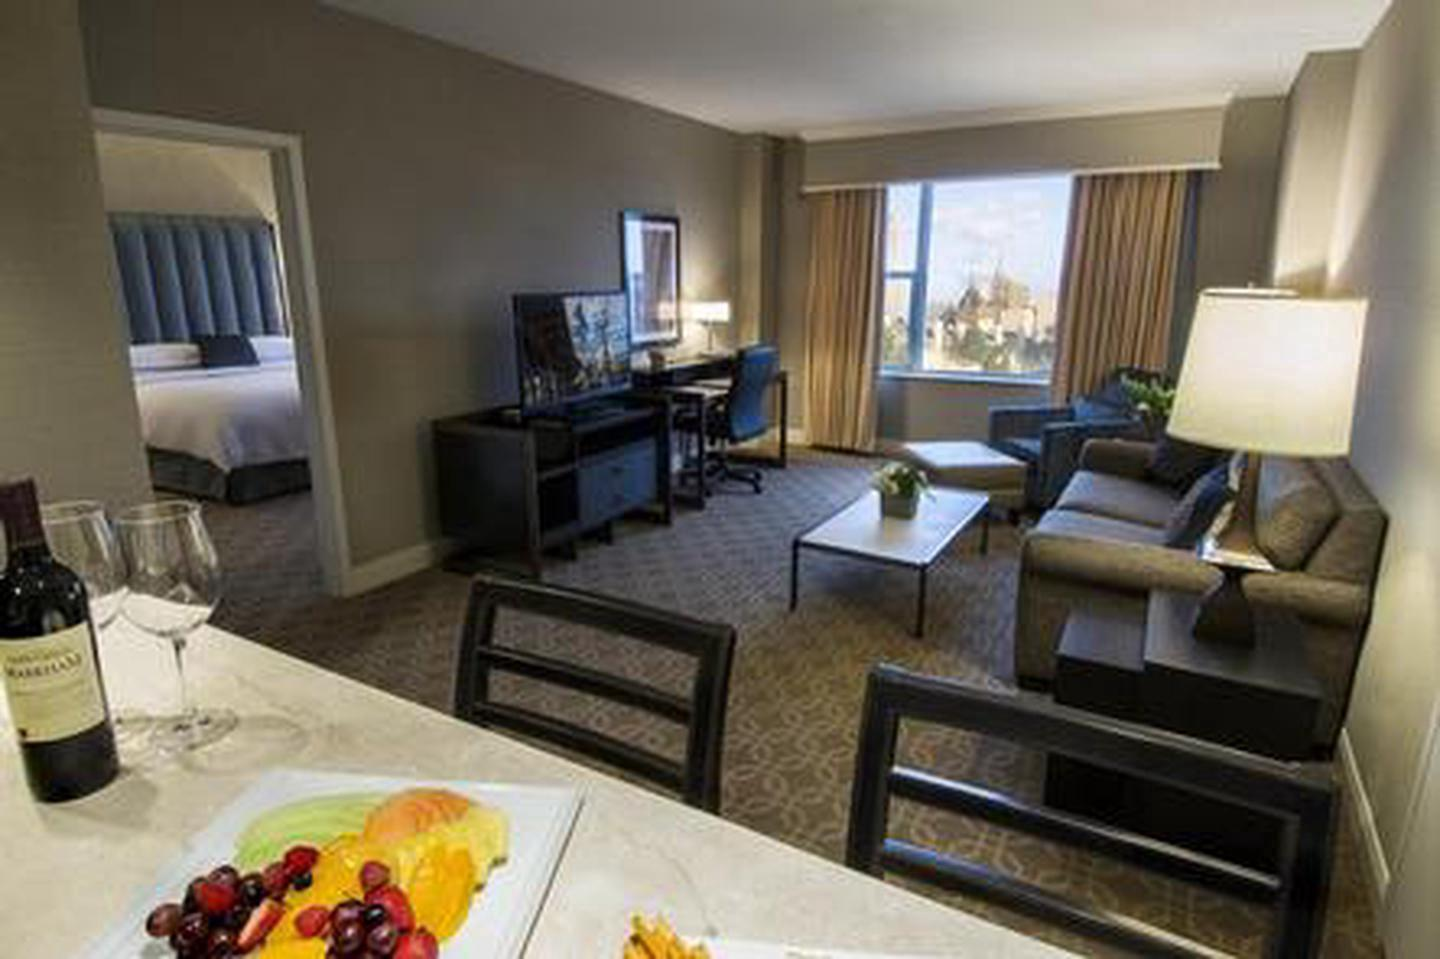 Accommodations The Hilton Milwaukee City Center offers 729 historic guestrooms and suites.